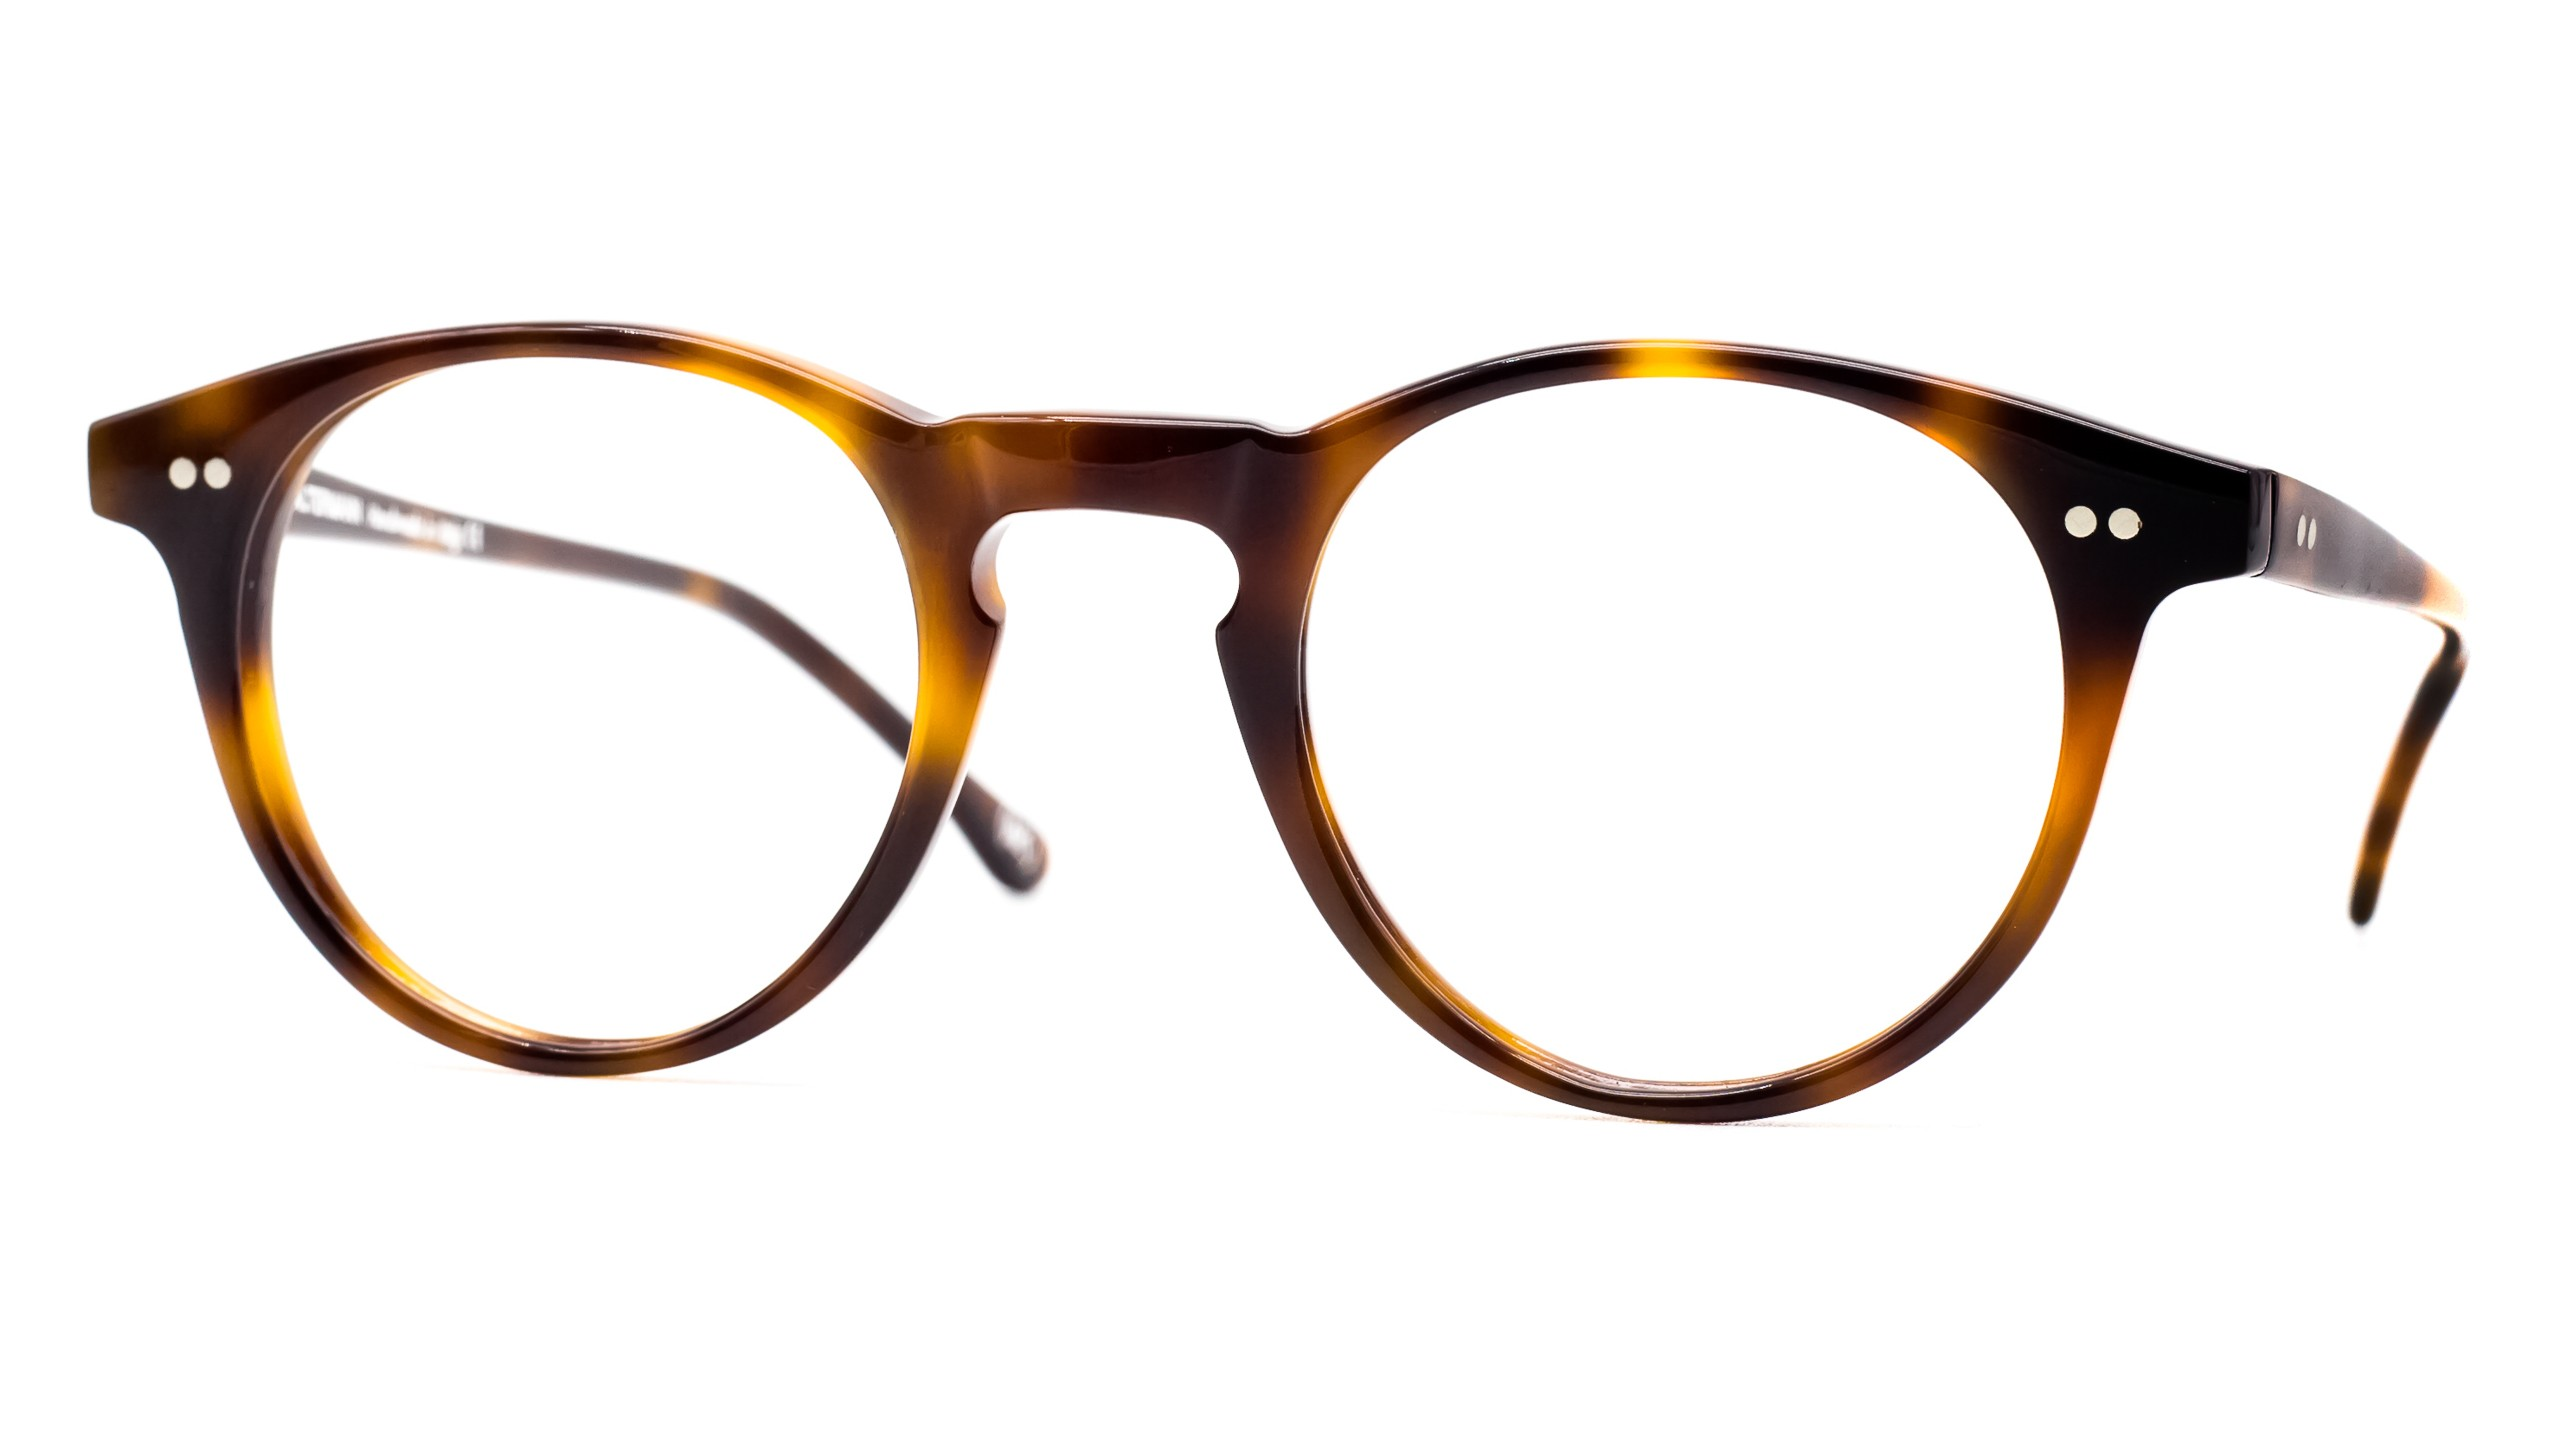 eyeglasses-Nathan-Kaltermann-made-in-Italy-Ponza-C03-Vista2